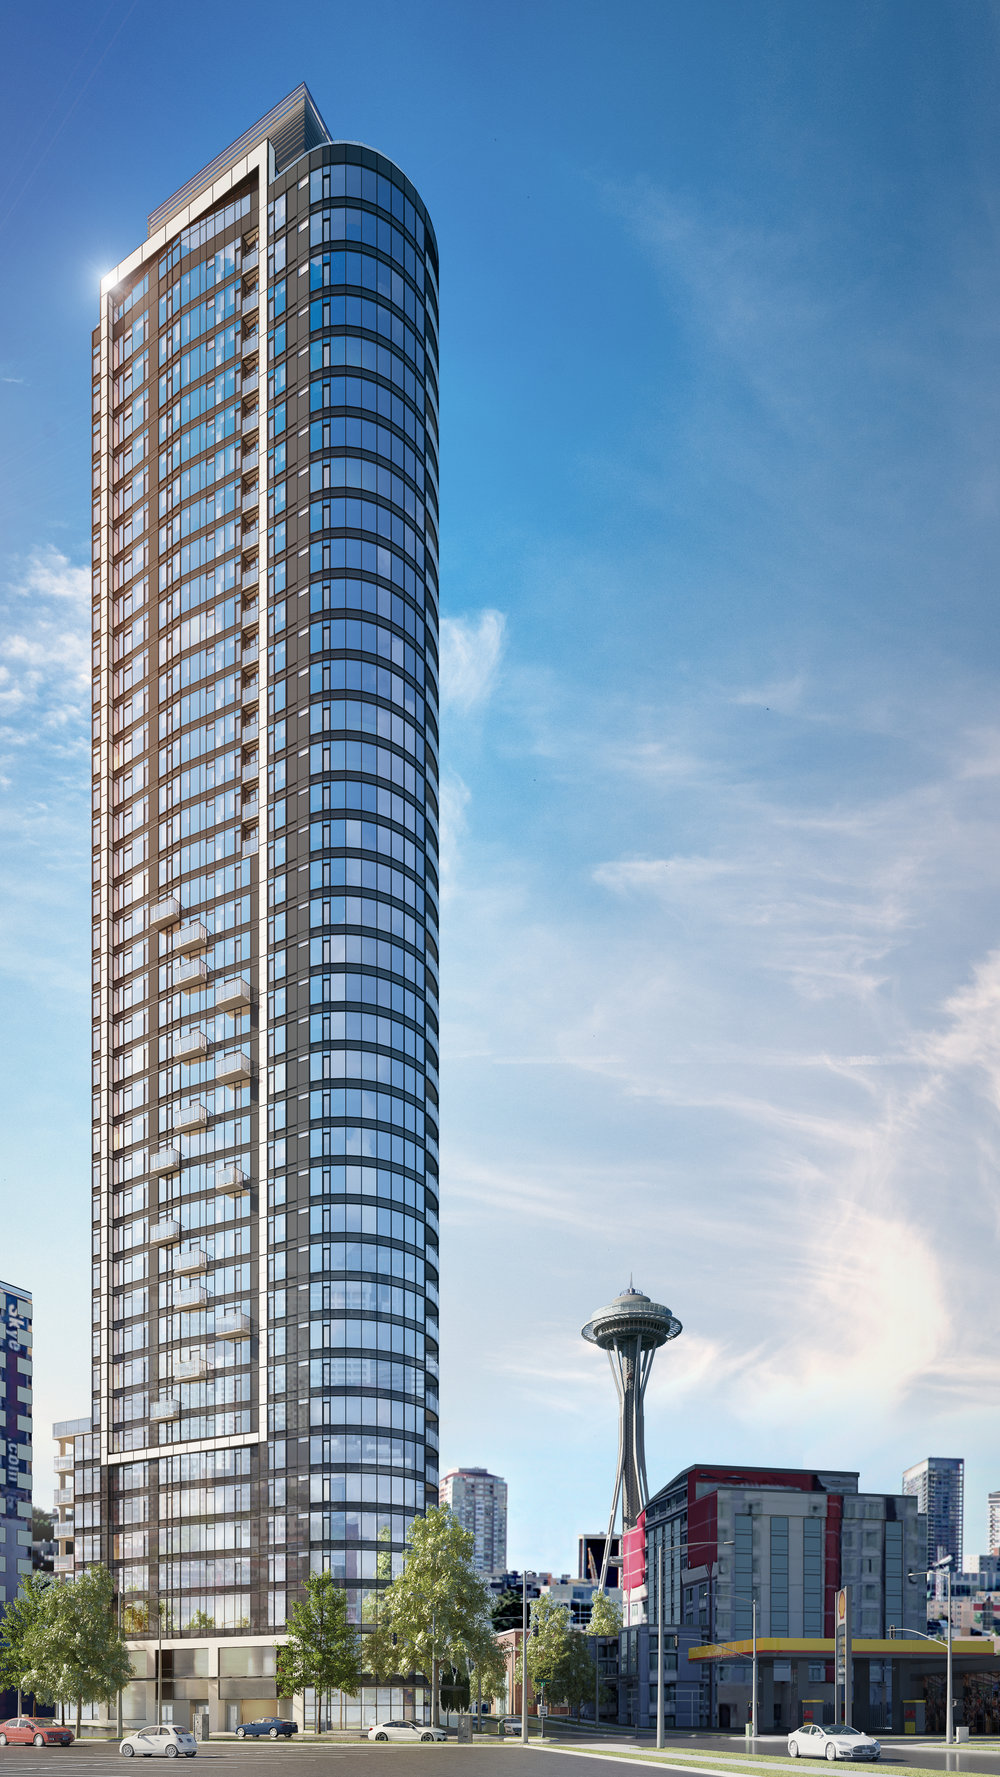 SPIRE (above) will utilize a first-of-its-kind semi-automated parking system on its 10,000 square foot site.